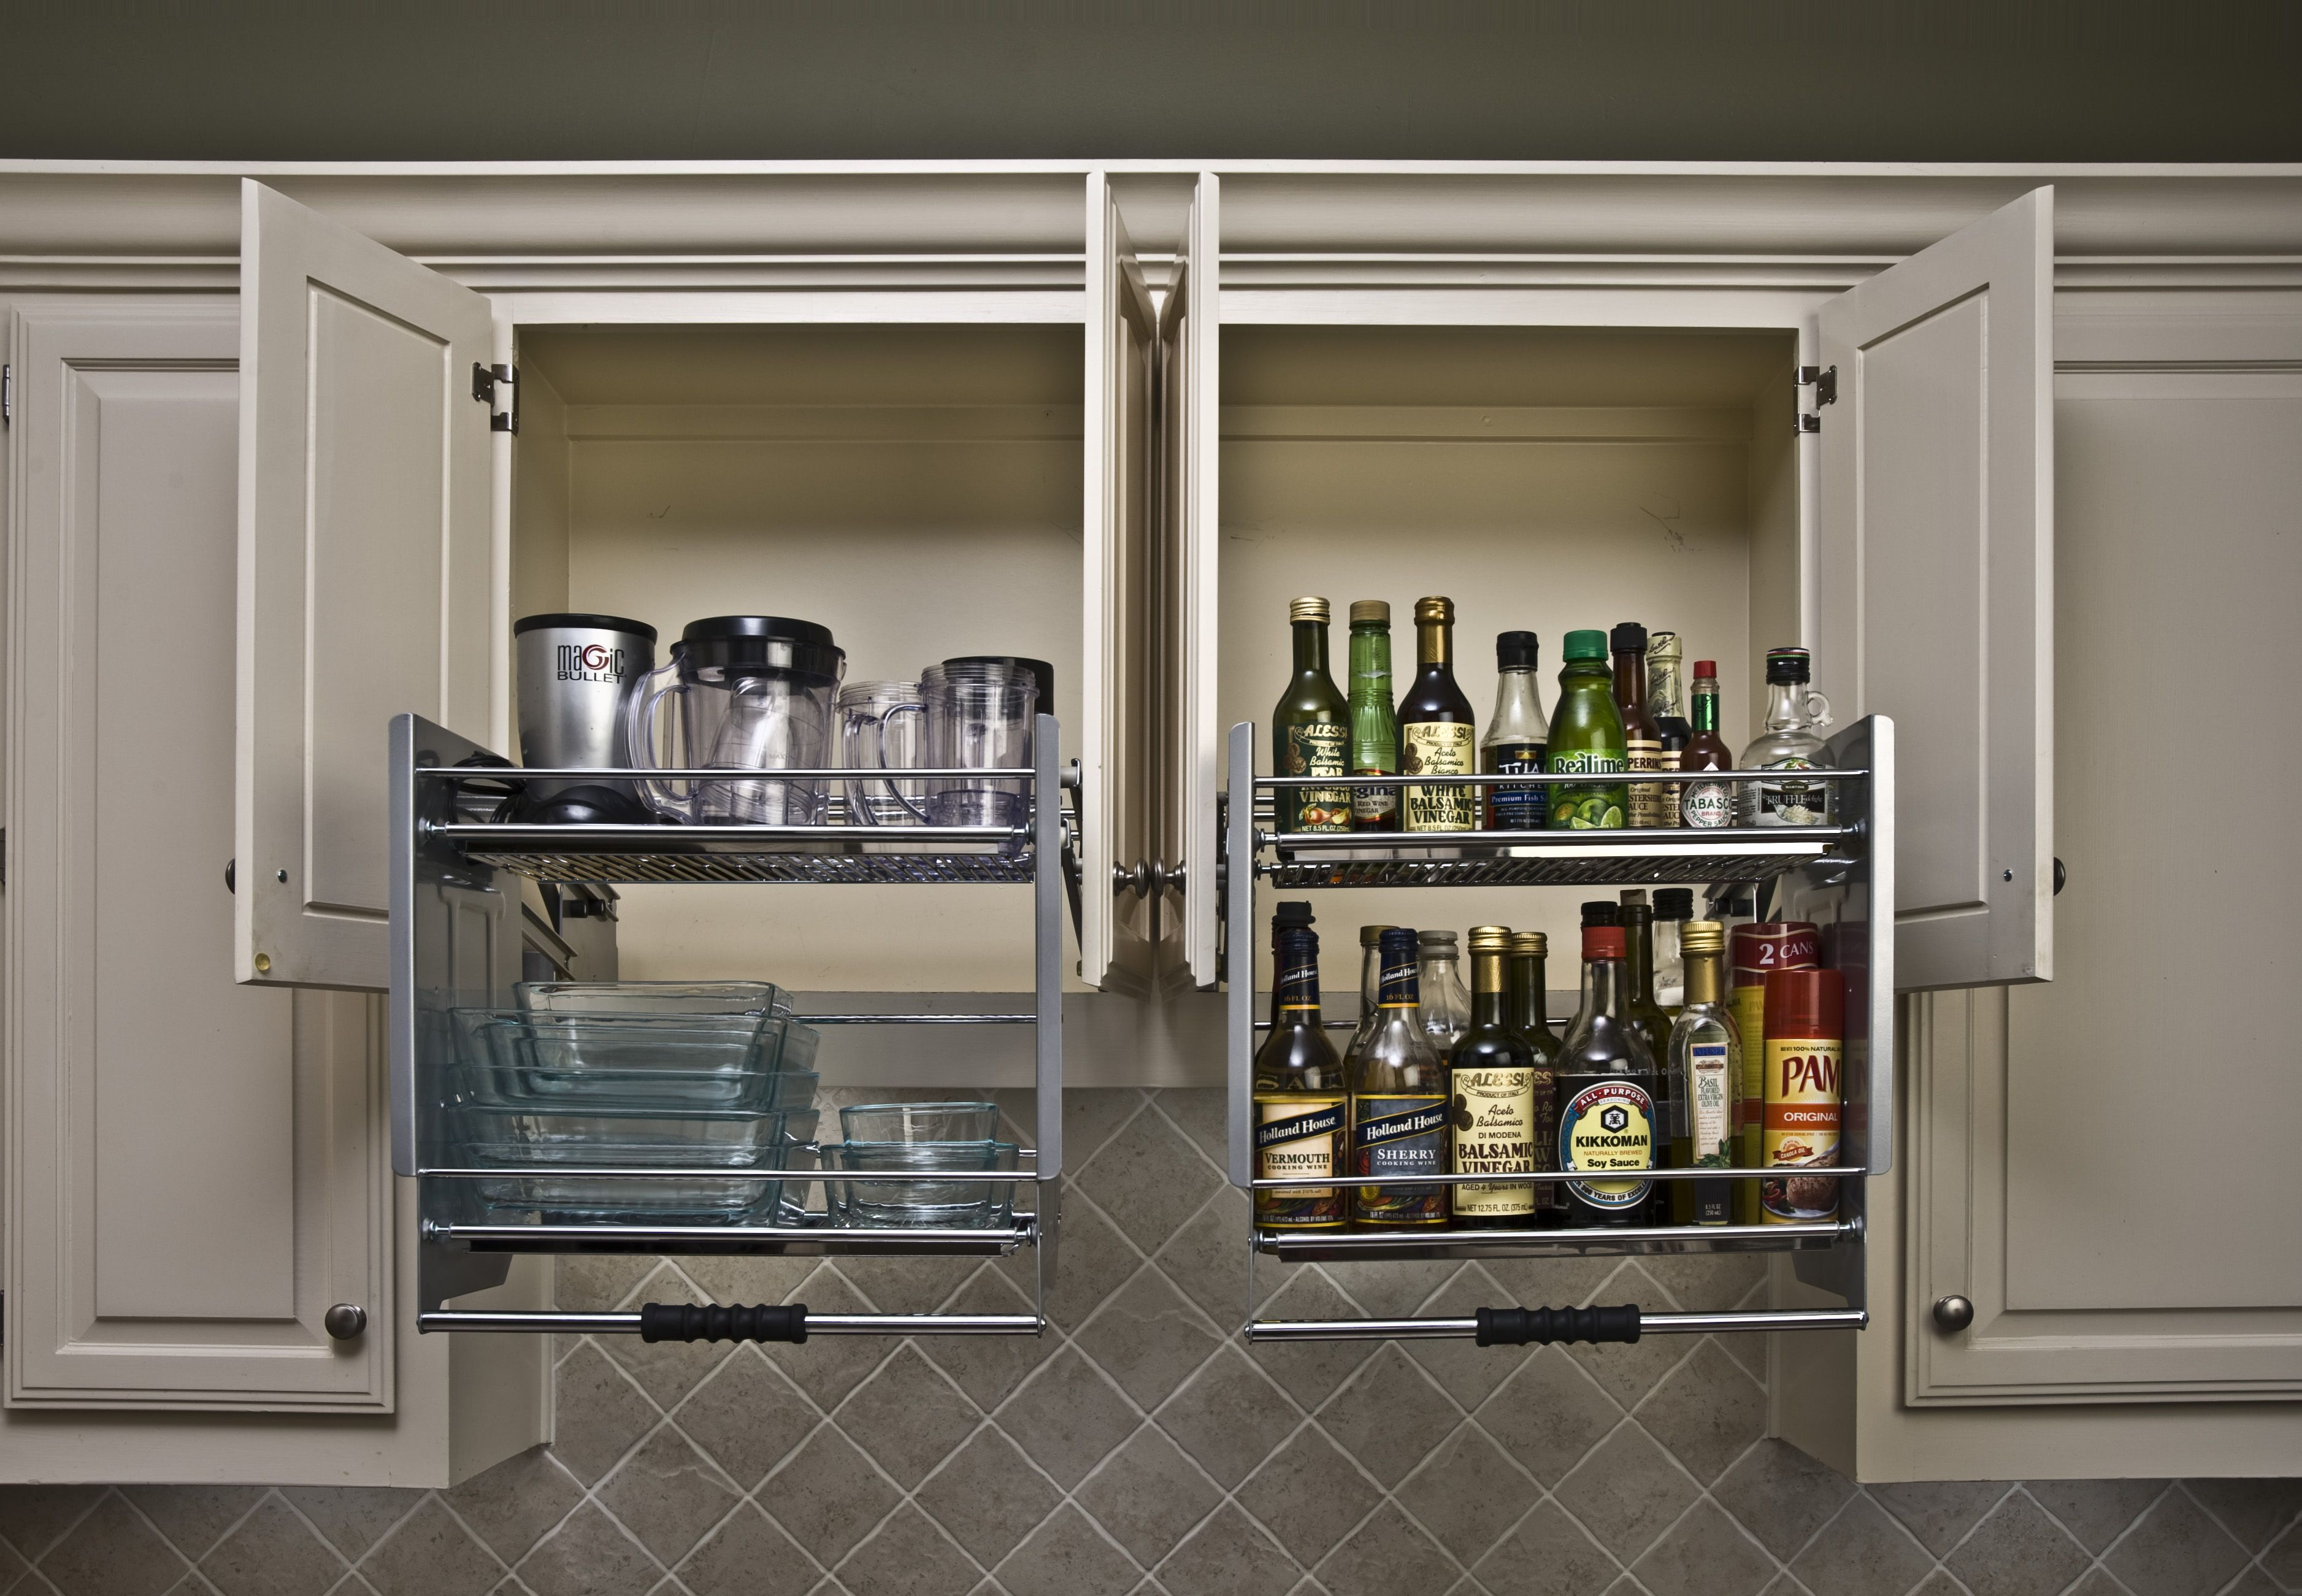 Kitchen Cabinet Shelving Islands Big Lots Shelf Genie Pull Down Shelves Finally A Solution For